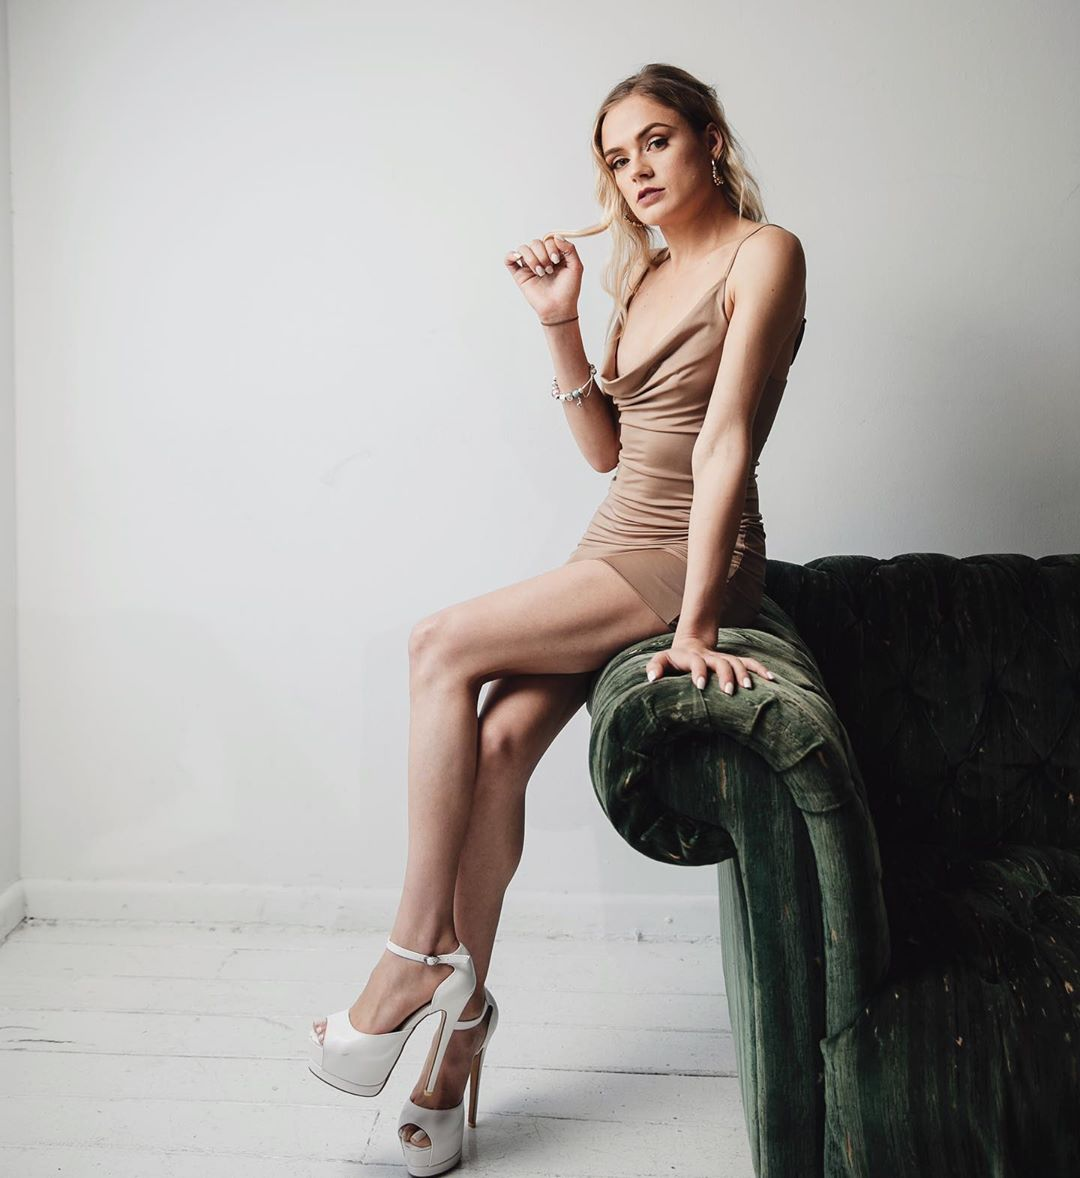 Beautiful blonde Australian model Bree Delamont wearing a tight dress and white high heels sitting on the arm of a green sofa with her sexy legs crossed playing with her hair